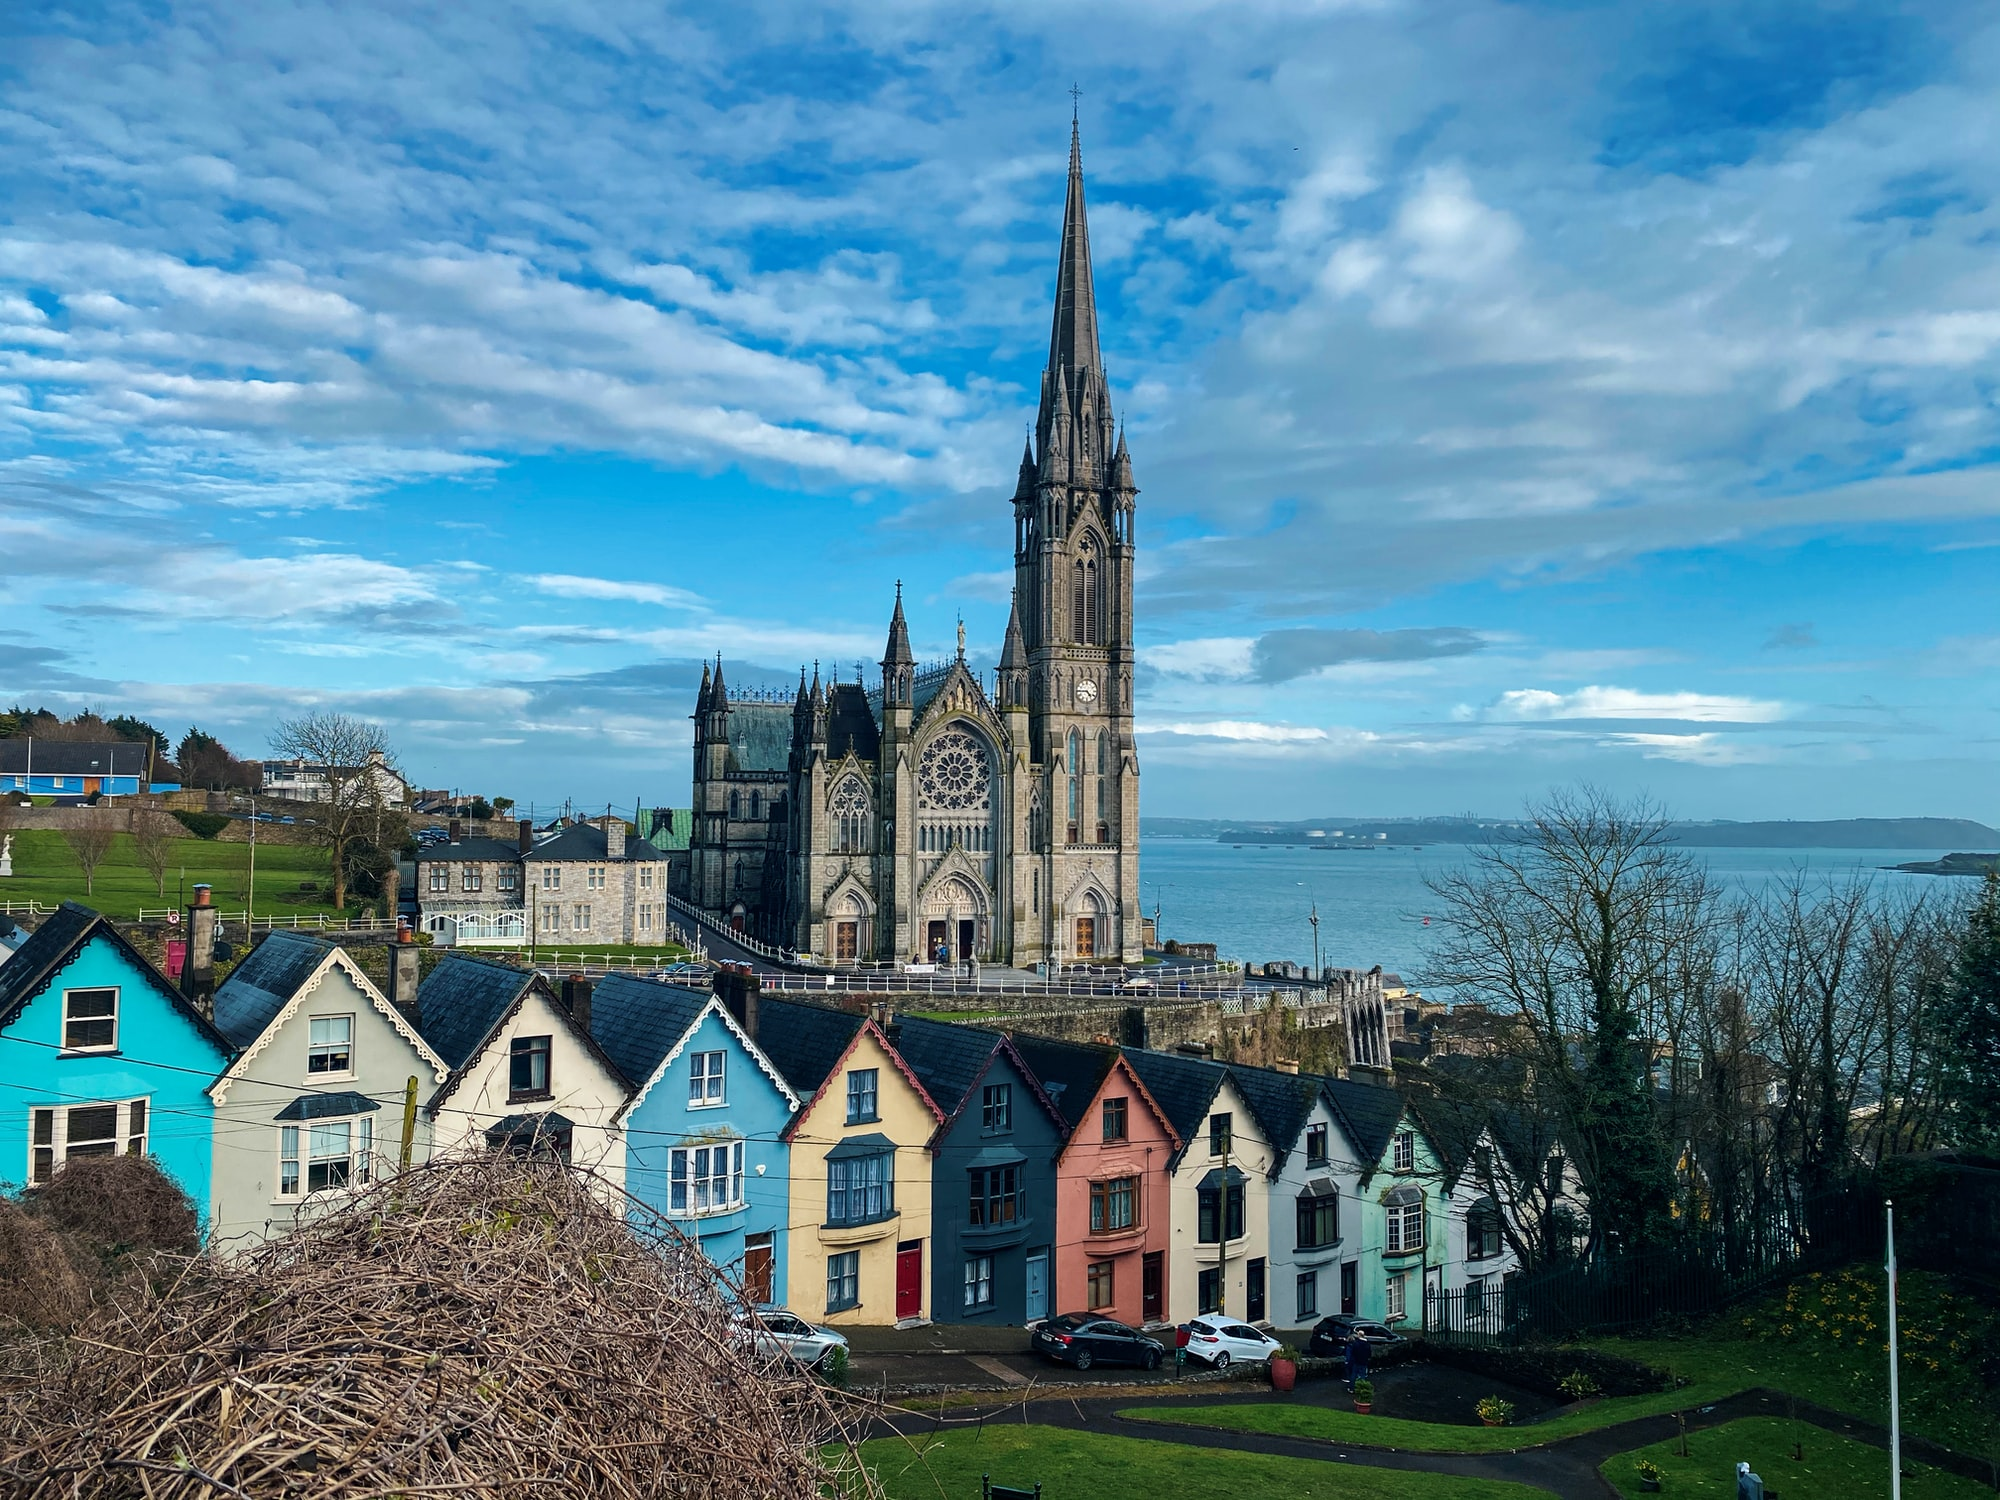 Cobh Co. Cork Ireland https://www.instagram.com/jaypix_01/